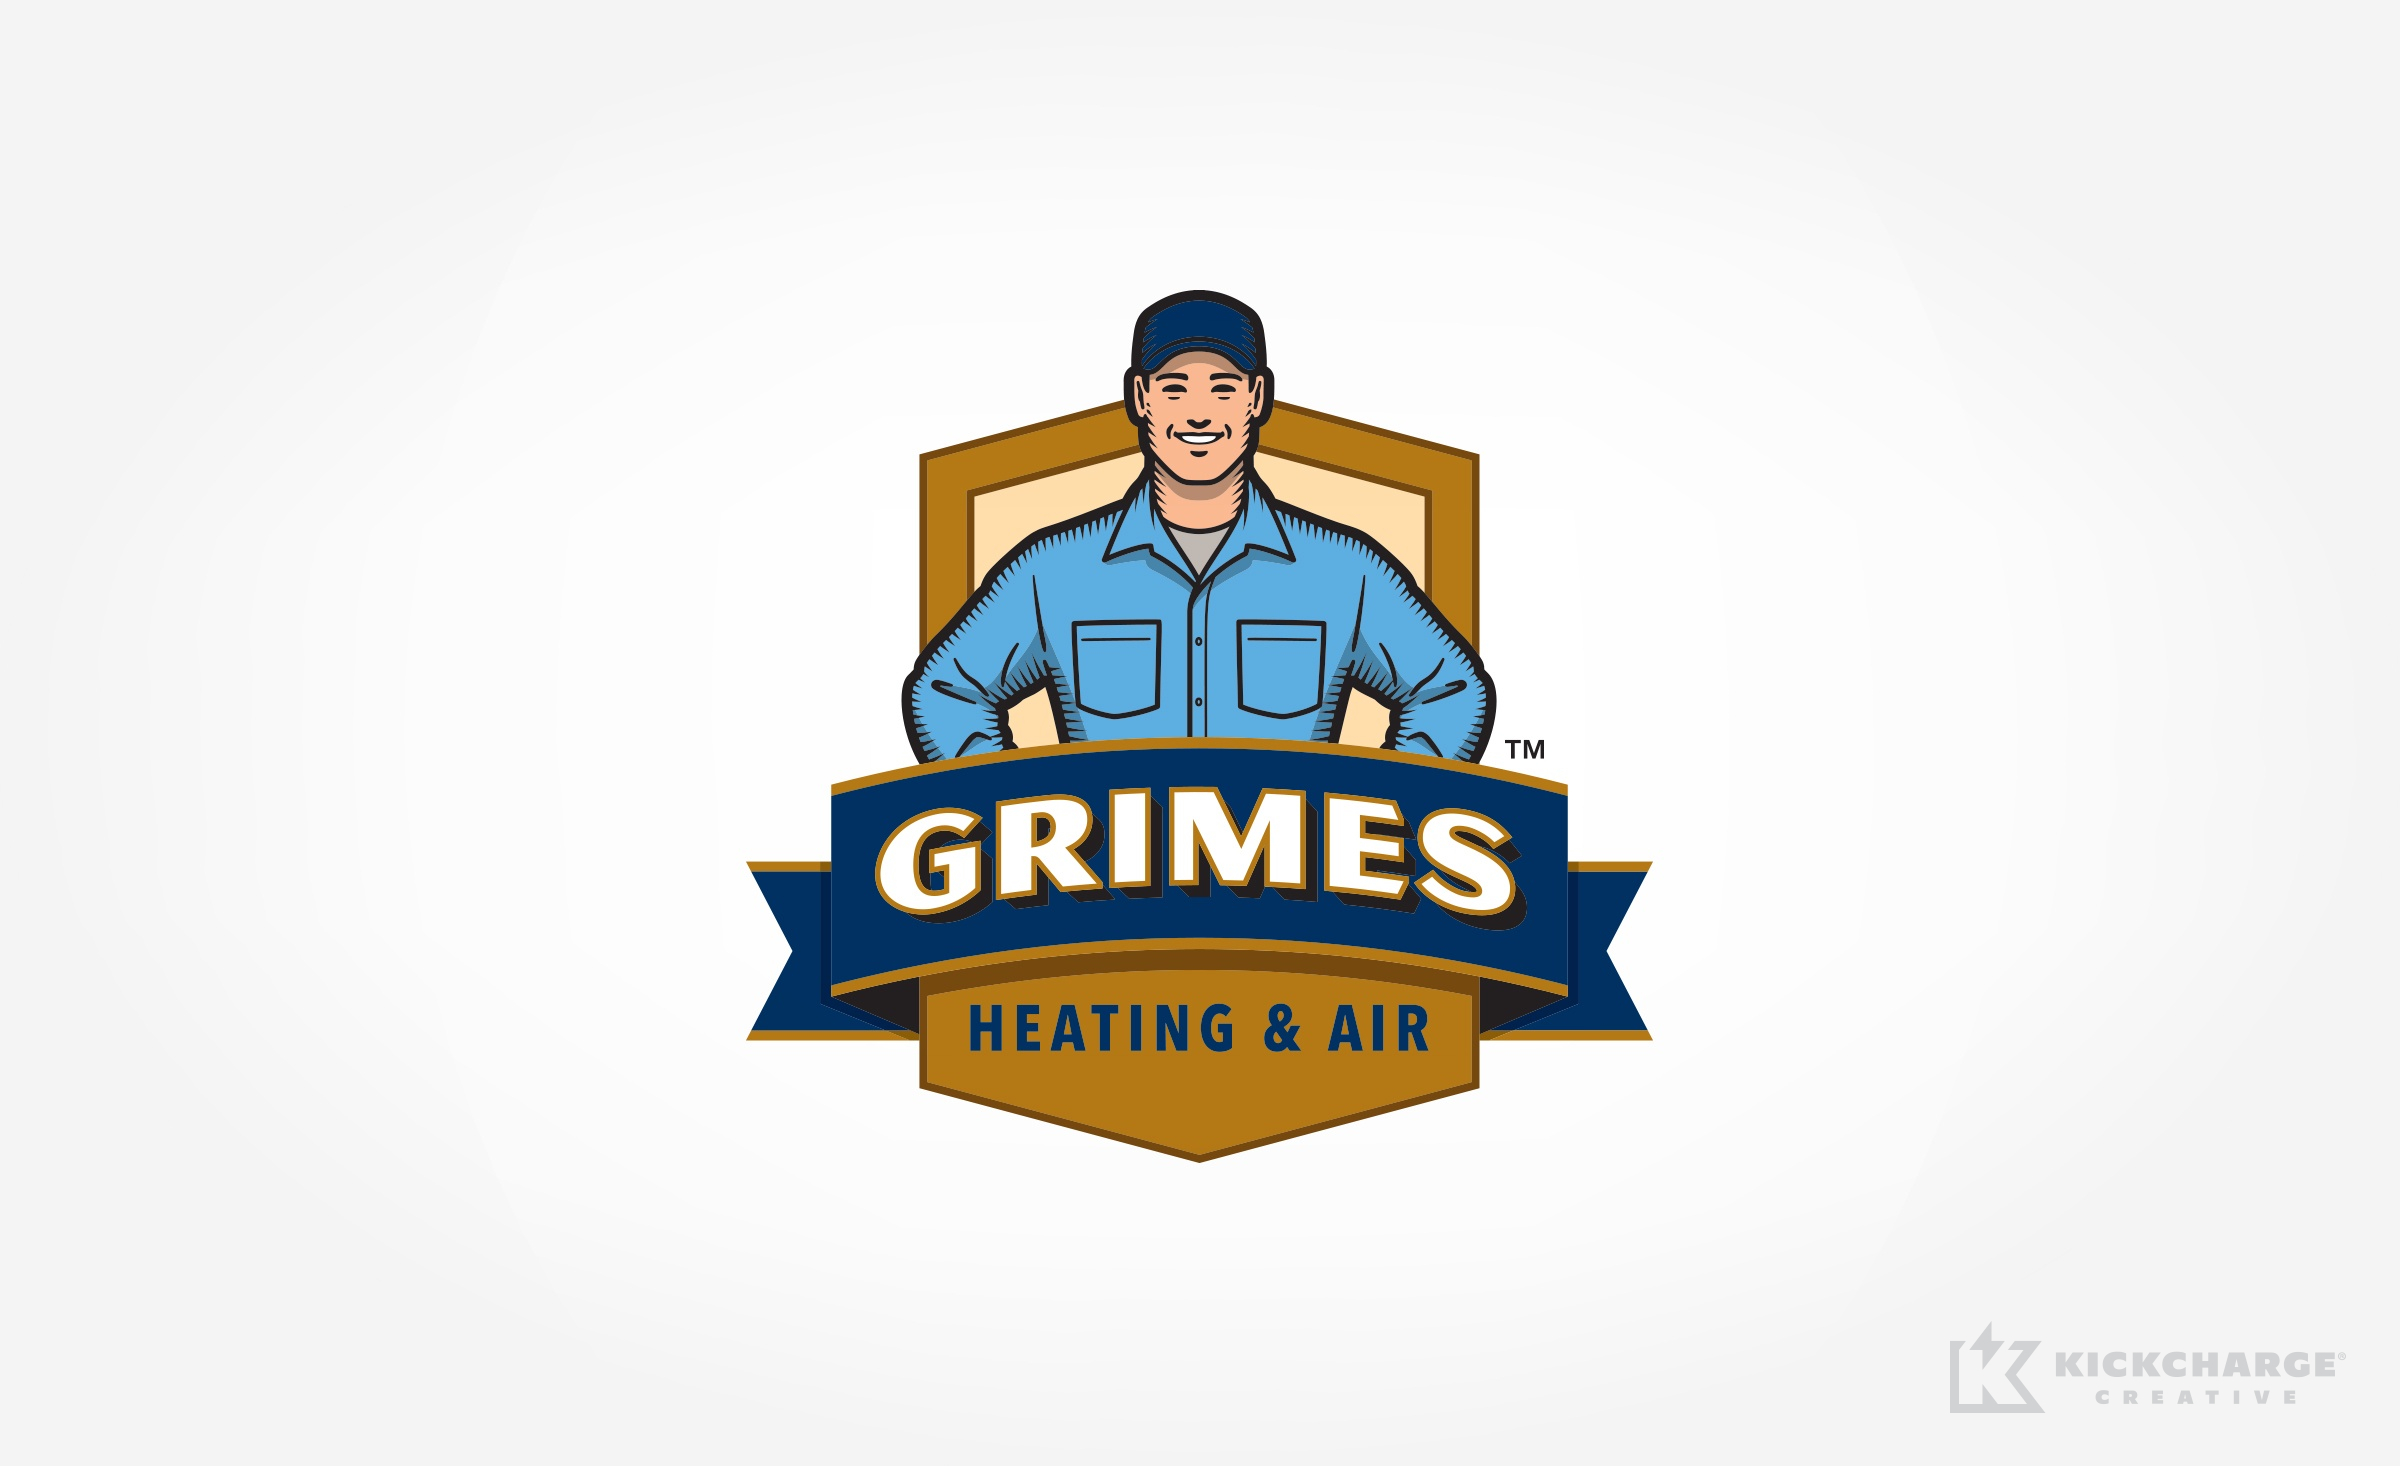 Grimes Heating & Air